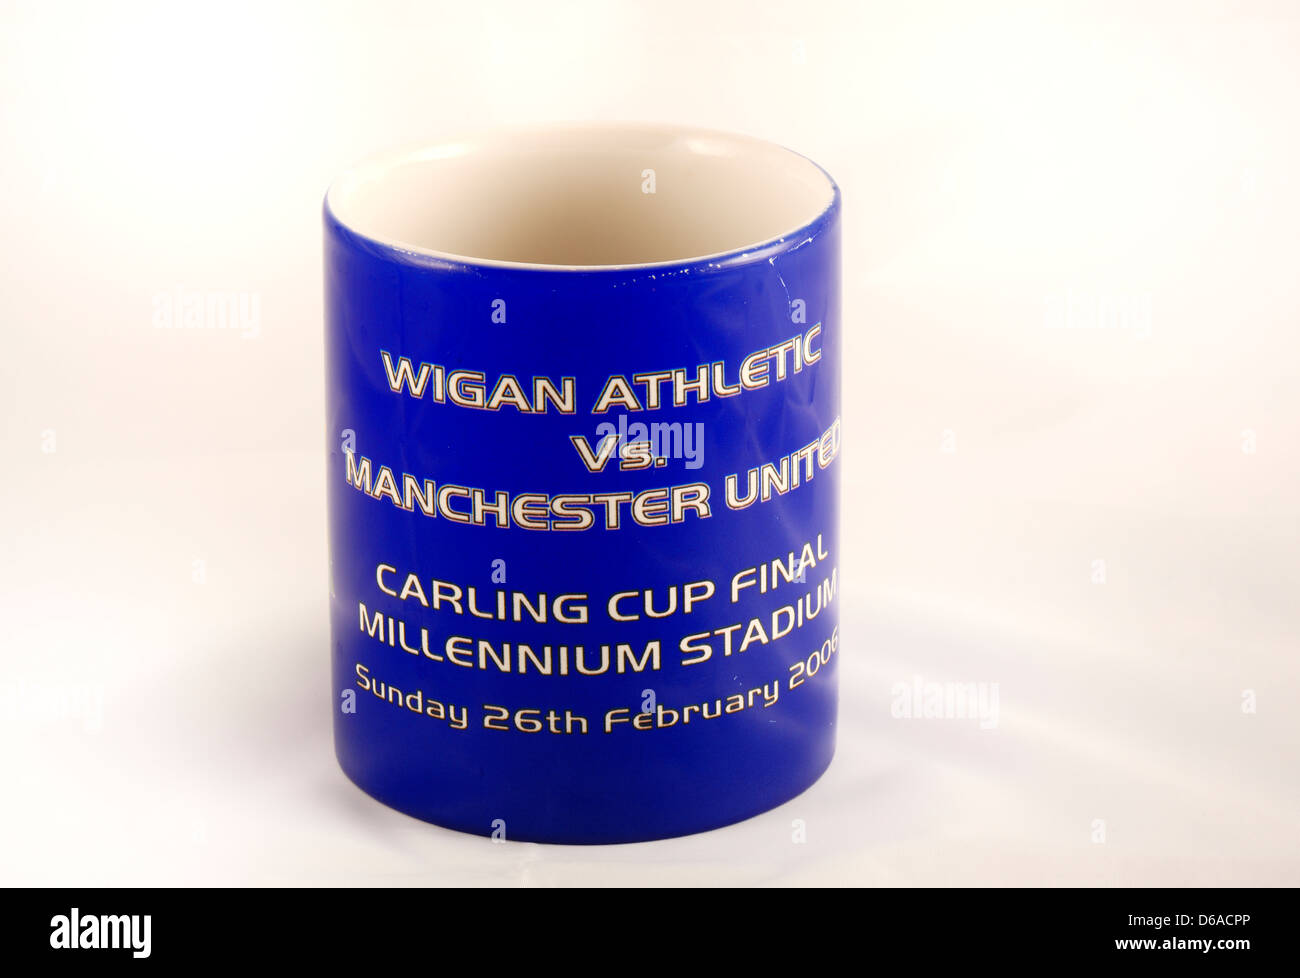 c86f1e917 Carling Cup League Cup Final 2006 commemorative mug for Wigan Athletic vs  Manchester United.